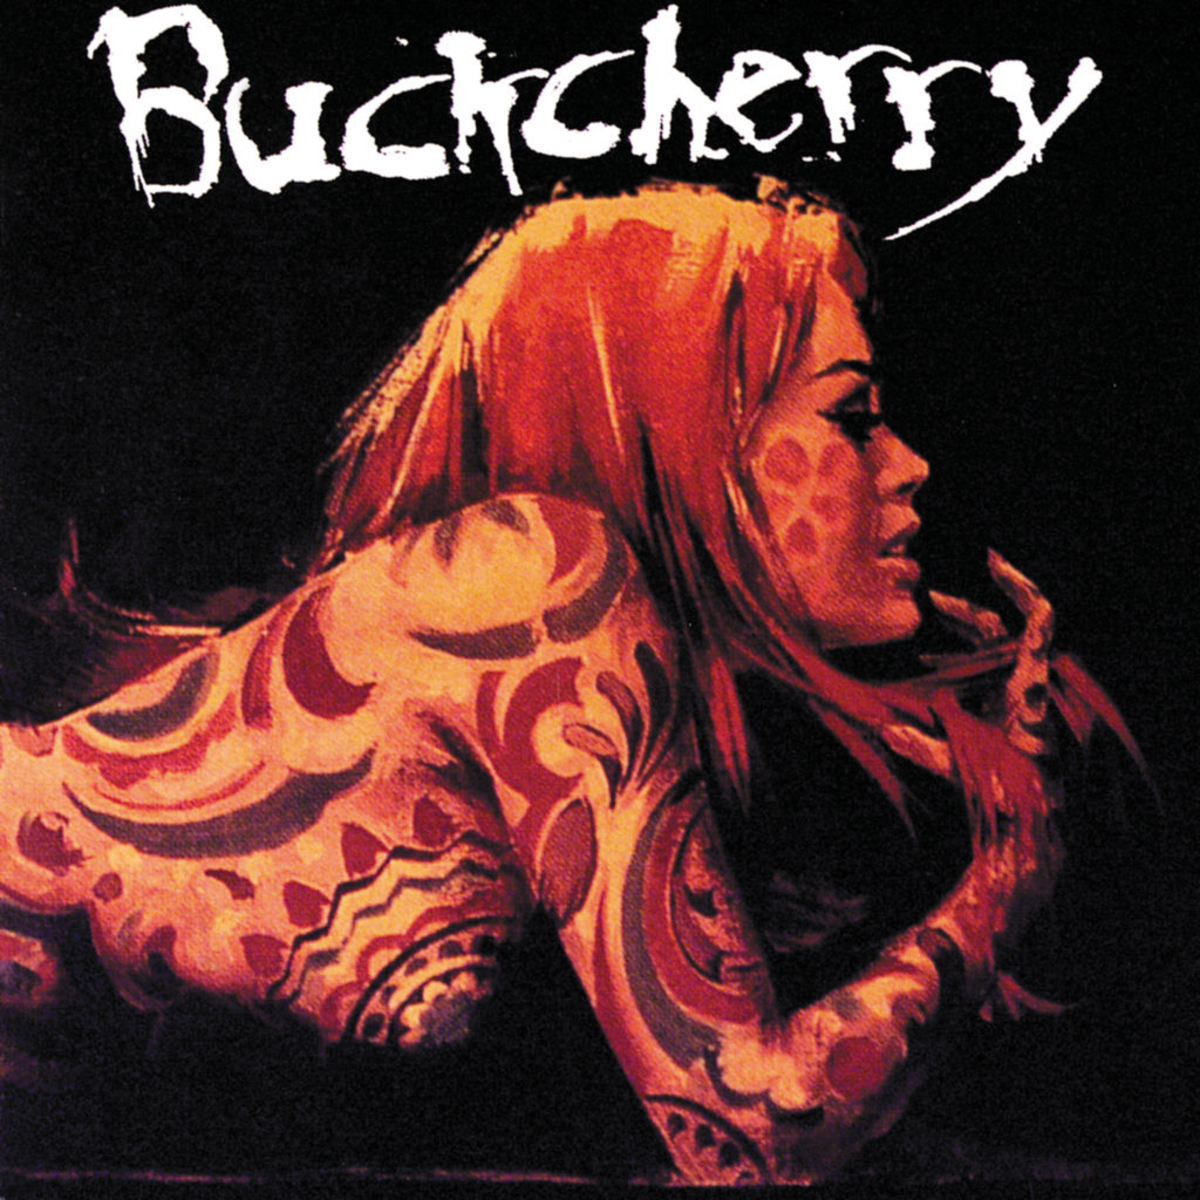 Art for Dirty Mind by Buckcherry